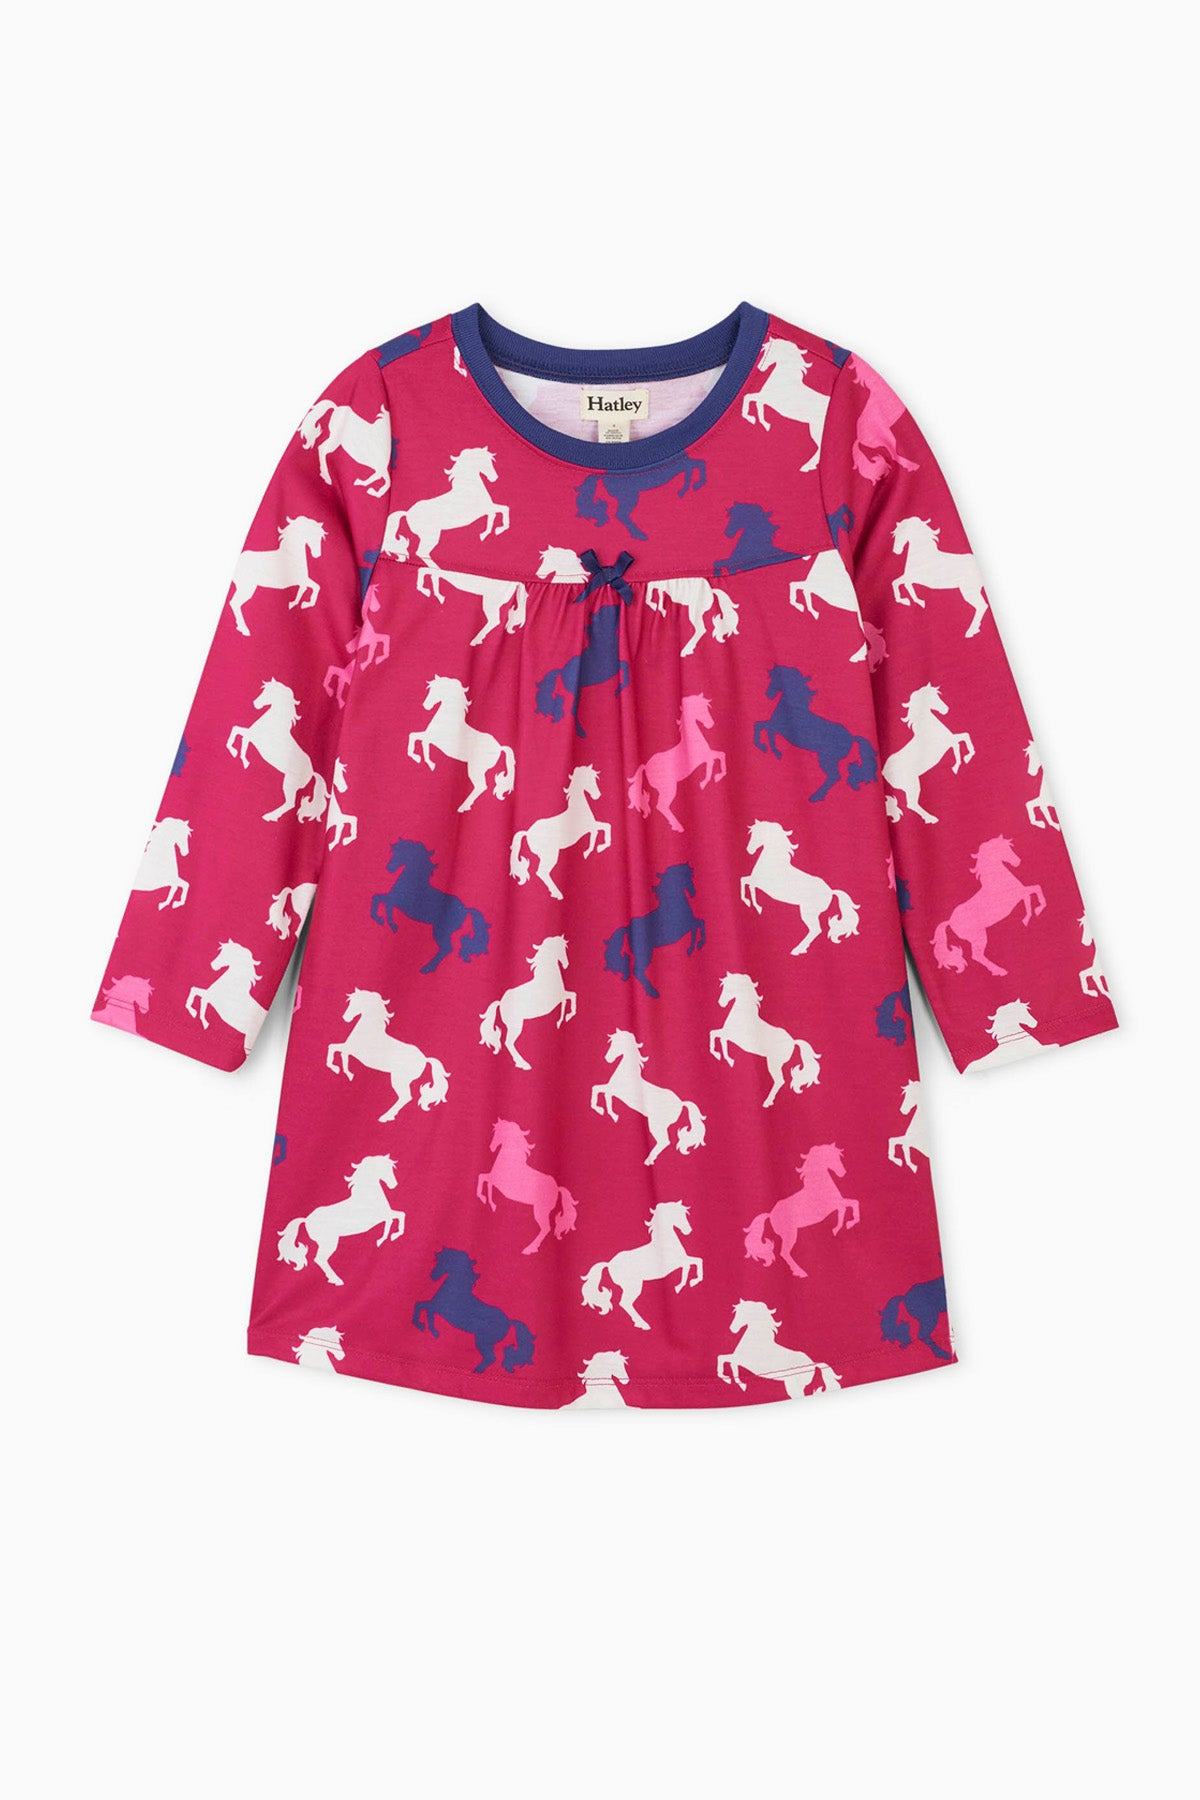 Hatley Playful Horses Nightdress